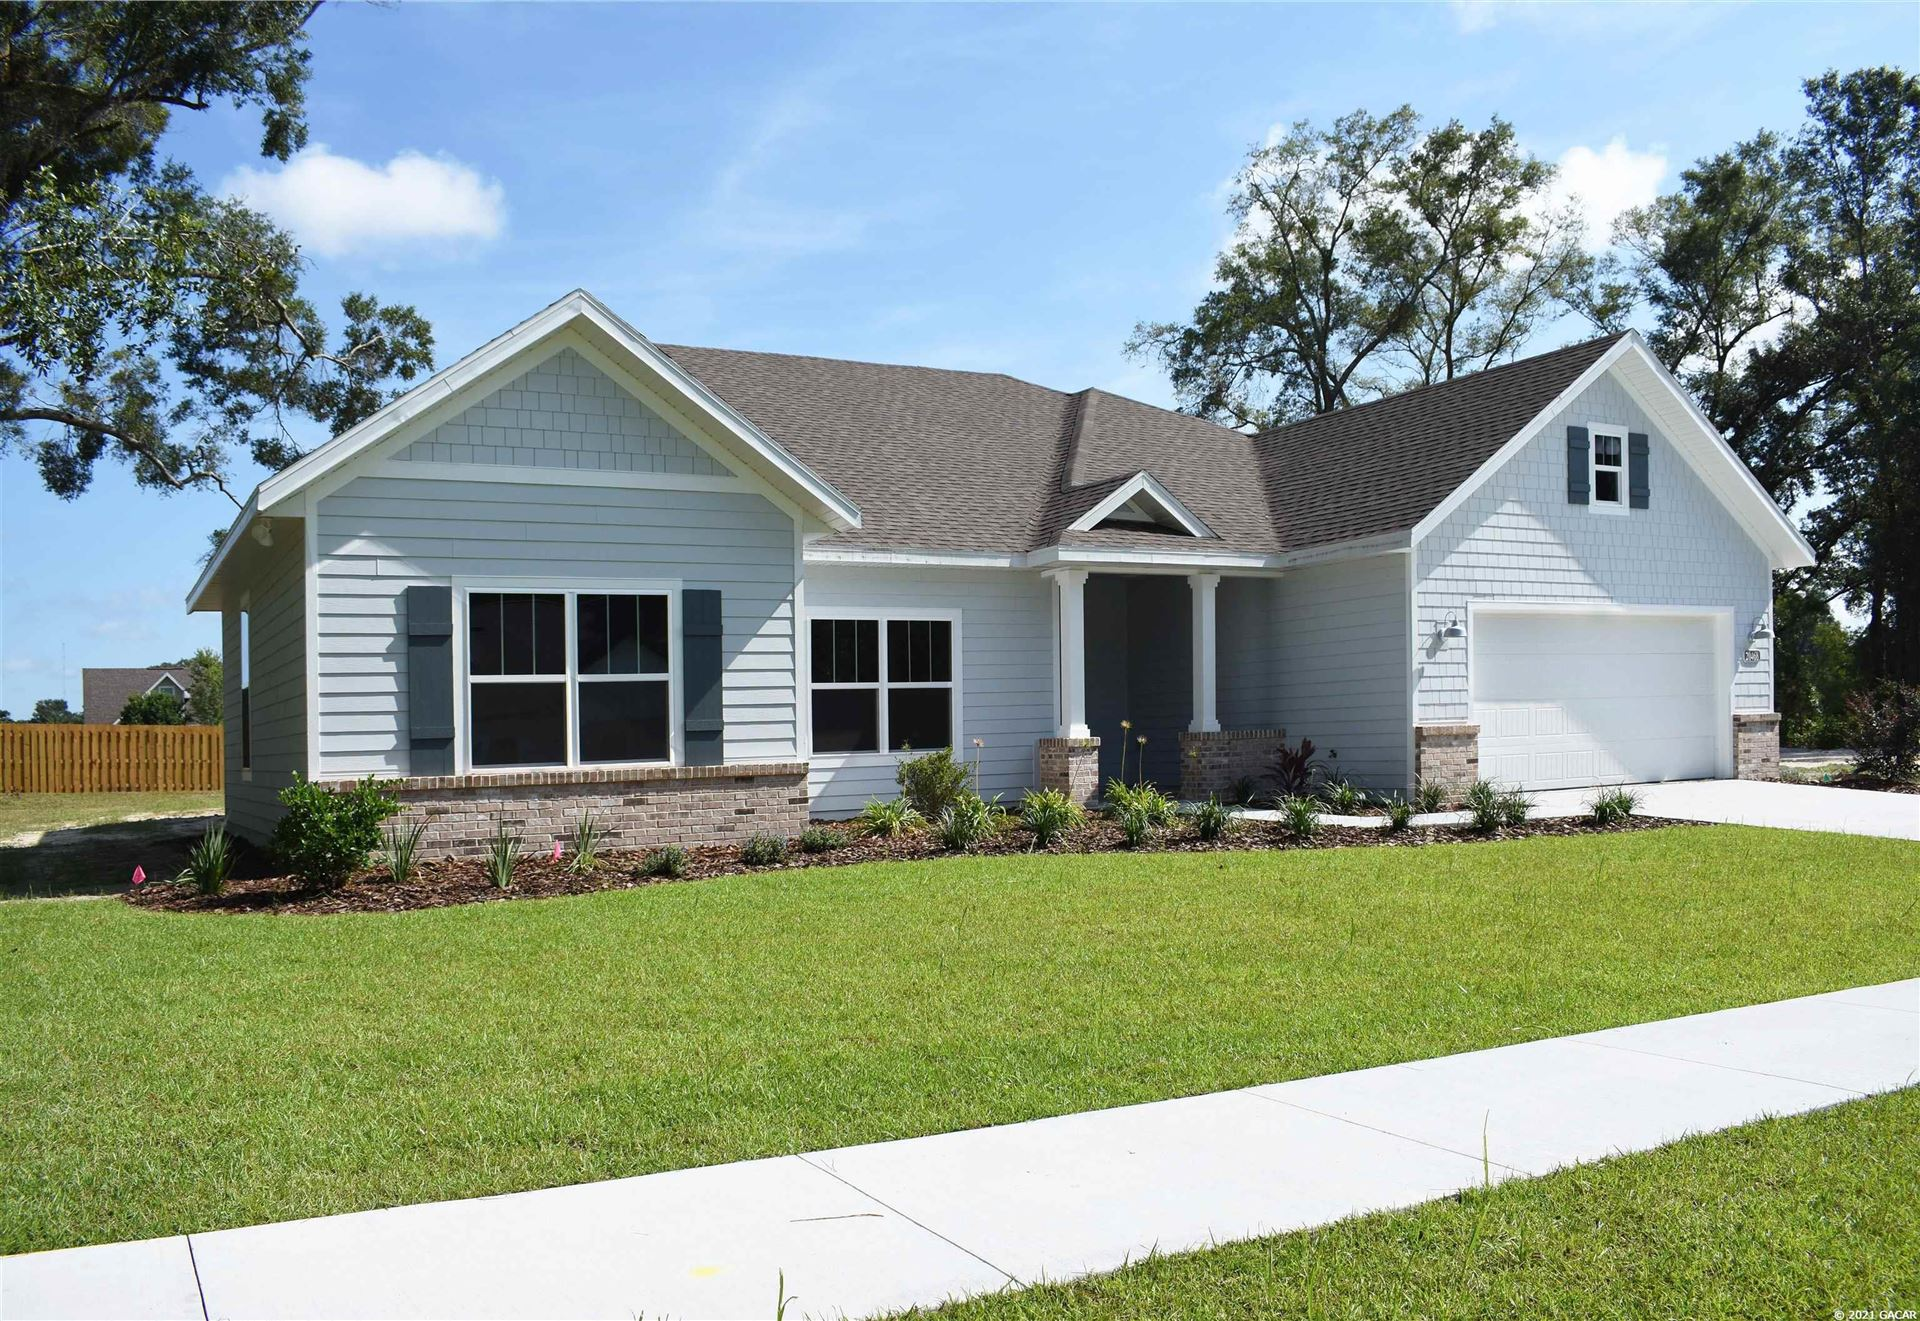 20468 NW 160th Lane, High Springs, FL 32643 - #: 442971